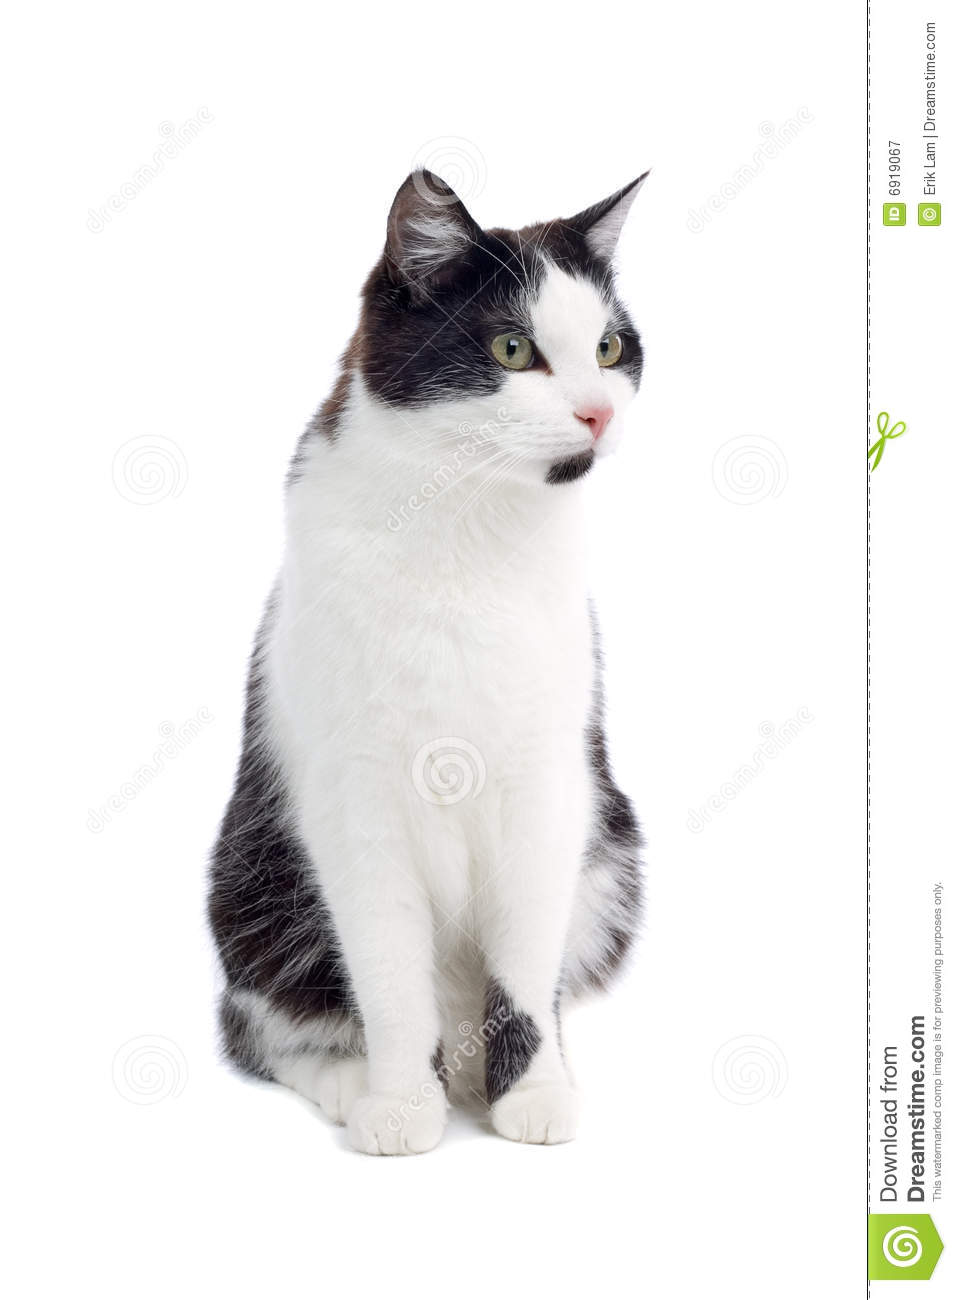 Cute Black And White Cat Stock Image Image Of Details 6919067